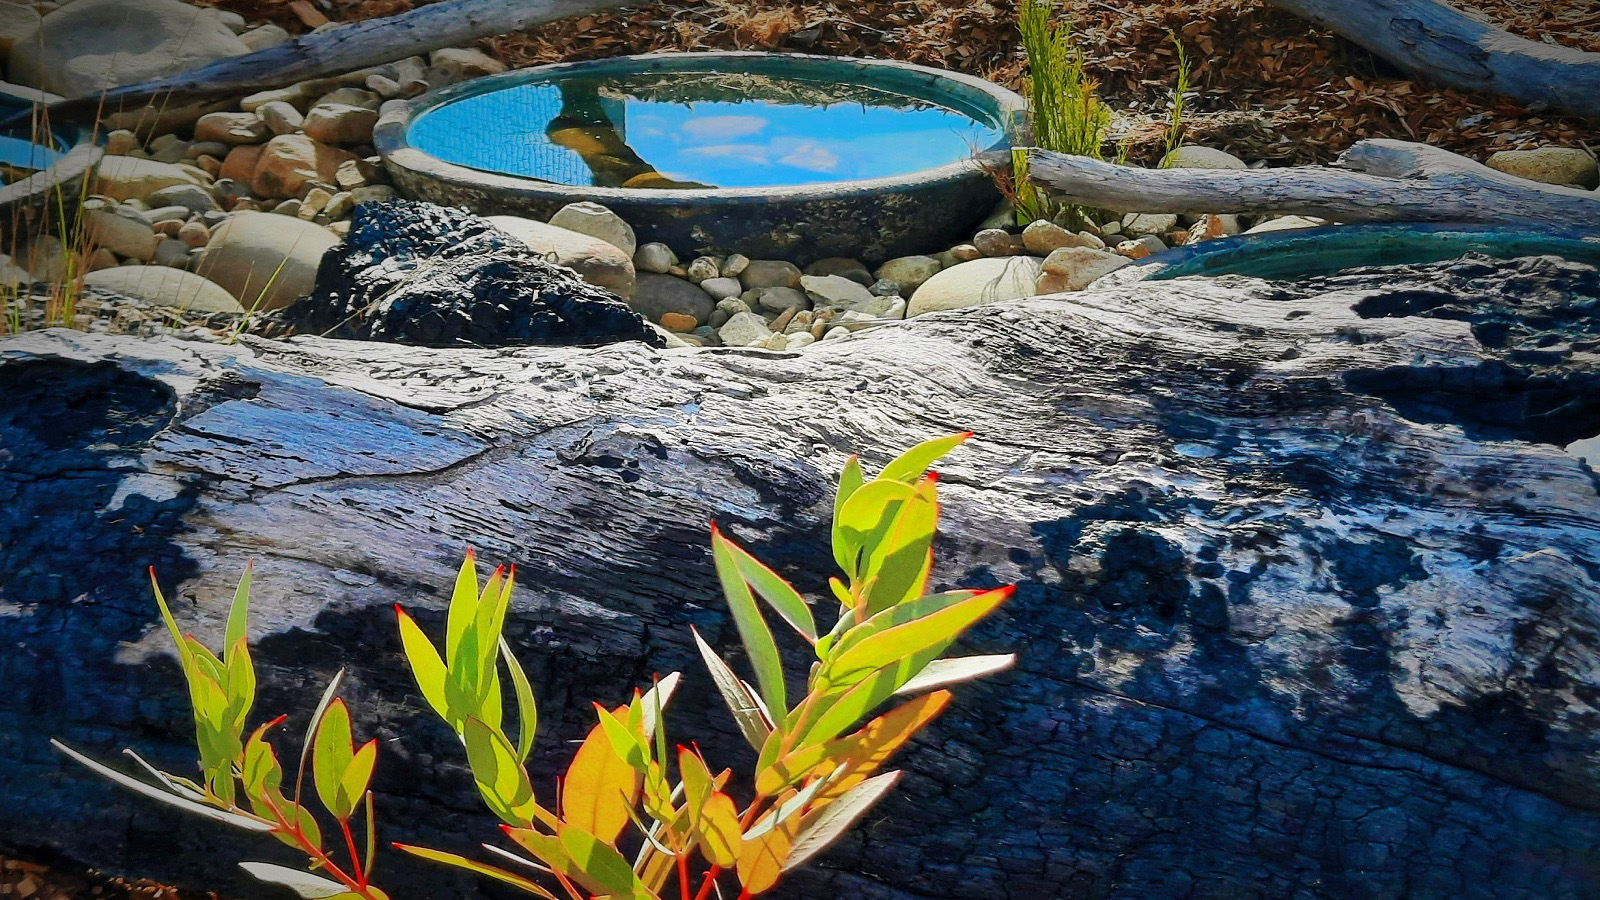 A ground level water feature in a rocky setting